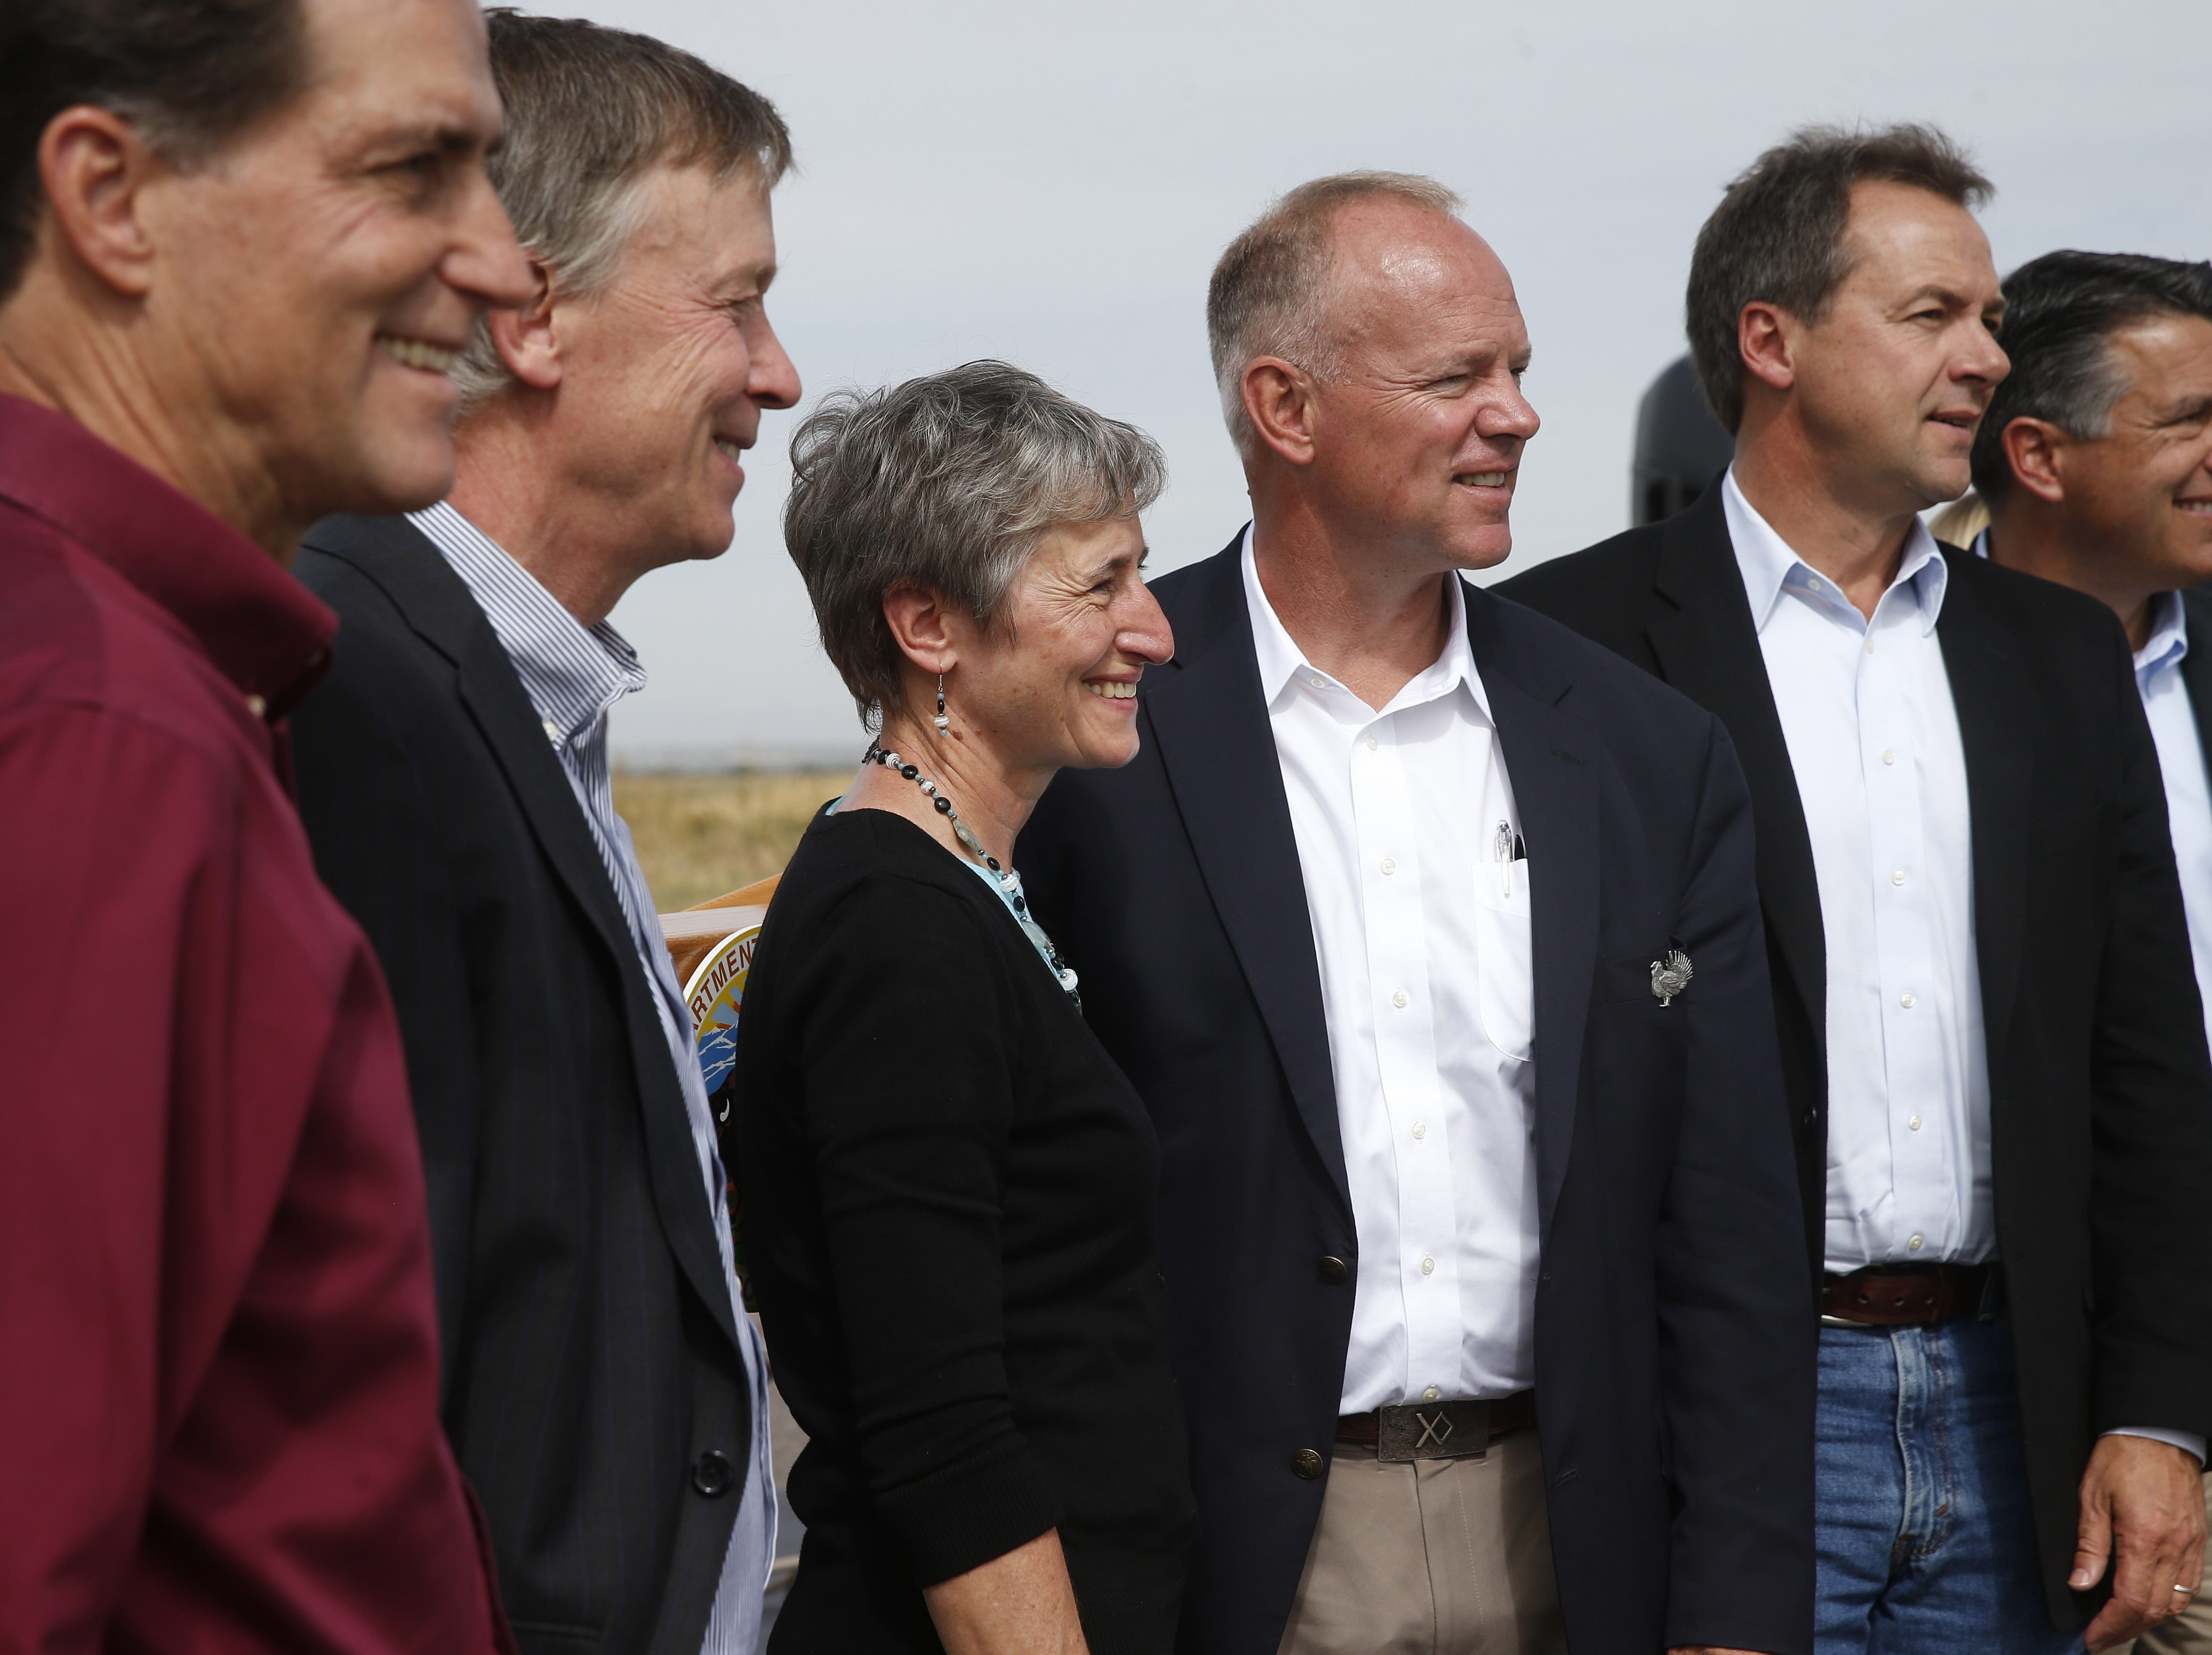 AP Photo/Brennan Linsley Interior Secretary Sally Jewell, third from left, poses for a group photo with, left to right, Dan Ashe, Director of the U.S. Fish and Wildlife Service, Colorado Gov. John Hickenlooper, Wyoming Gov. Matt Mead, Montana Gov. Steve Bullock, and Nevada Gov. Brian Sandoval, at a gathering where  Jewell made the formal announcement that the greater sage grouse does not need federal protections. Interior Secretary Sally Jewell, third from left, poses for a group photo with, left to right, Dan Ashe, Director of the U.S. Fish and Wildlife Service, Colorado Gov. John Hickenlooper, Wyoming Gov. Matt Mead, Montana Gov. Steve Bullock, and Nevada Gov. Brian Sandoval, at a gathering where Secretary Jewell made the formal announcement that the greater sage grouse, a ground-dwelling bird whose vast range spans 11 Western states, does not need federal protections, at Rocky Mountain Arsenal National Wildlife Refuge, in Commerce City, Colo., Tuesday Sept. 22, 2015. The Obama administration and affected states have committed hundreds of millions of dollars to saving the grouse without Endangered Species Act protections that many argued would threaten industry. (AP Photo/Brennan Linsley)